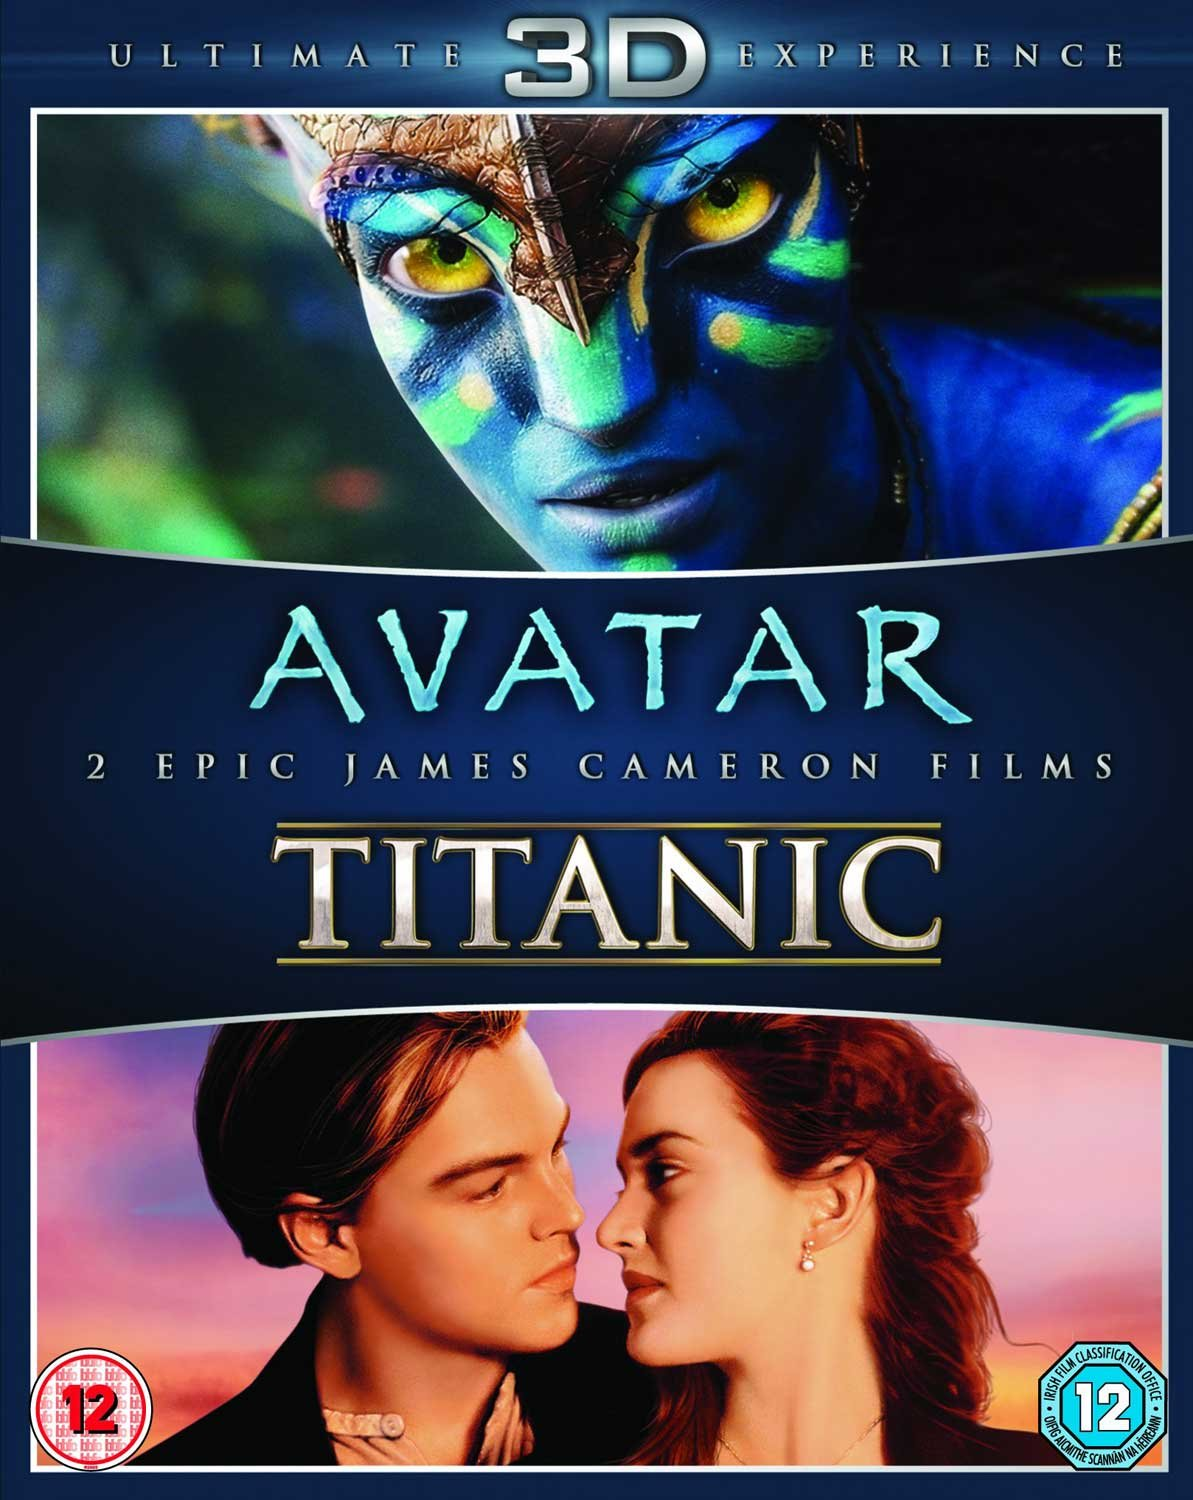 com james cameron s avatar titanic blu ray d double com james cameron s avatar titanic blu ray 3d double pack kate winslet leonardo dicapreo james cameron movies tv